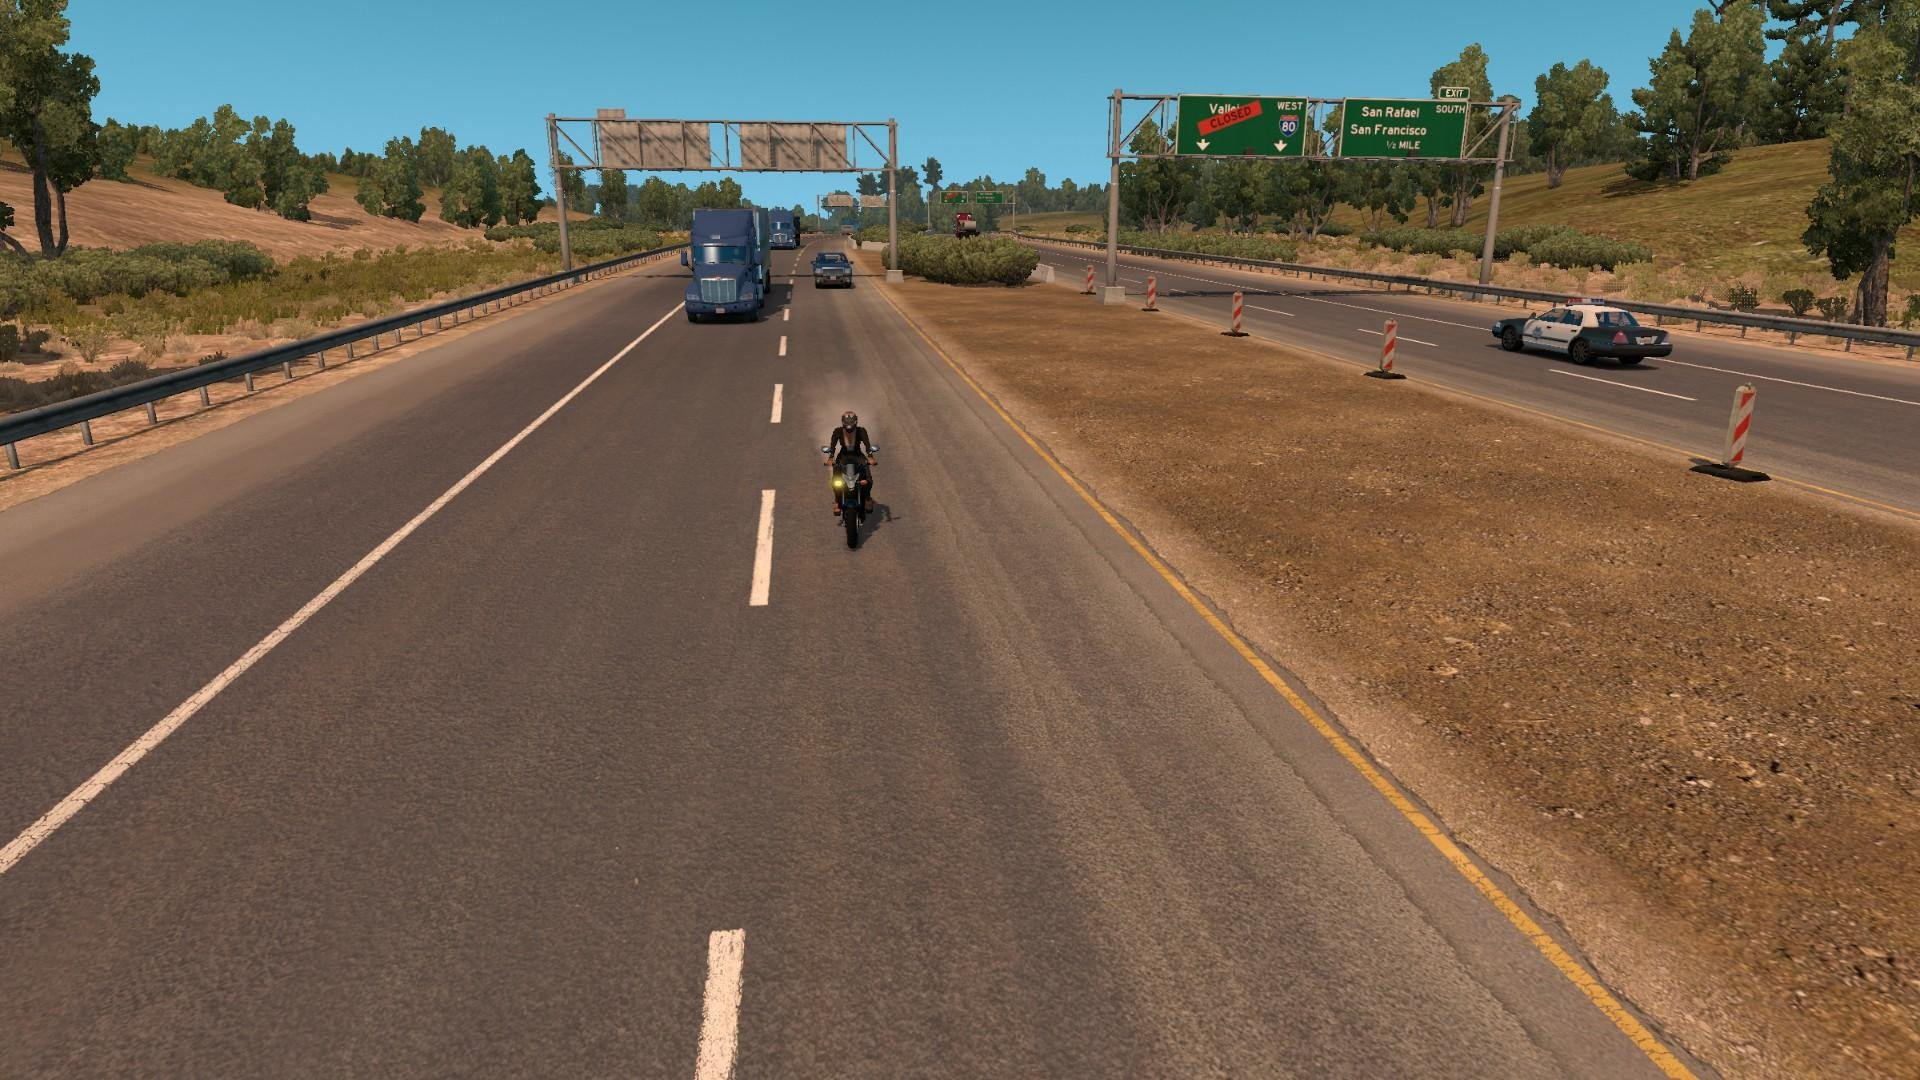 1454698723_3780-motorcycle-in-traffic-1-0-0_3.jpg